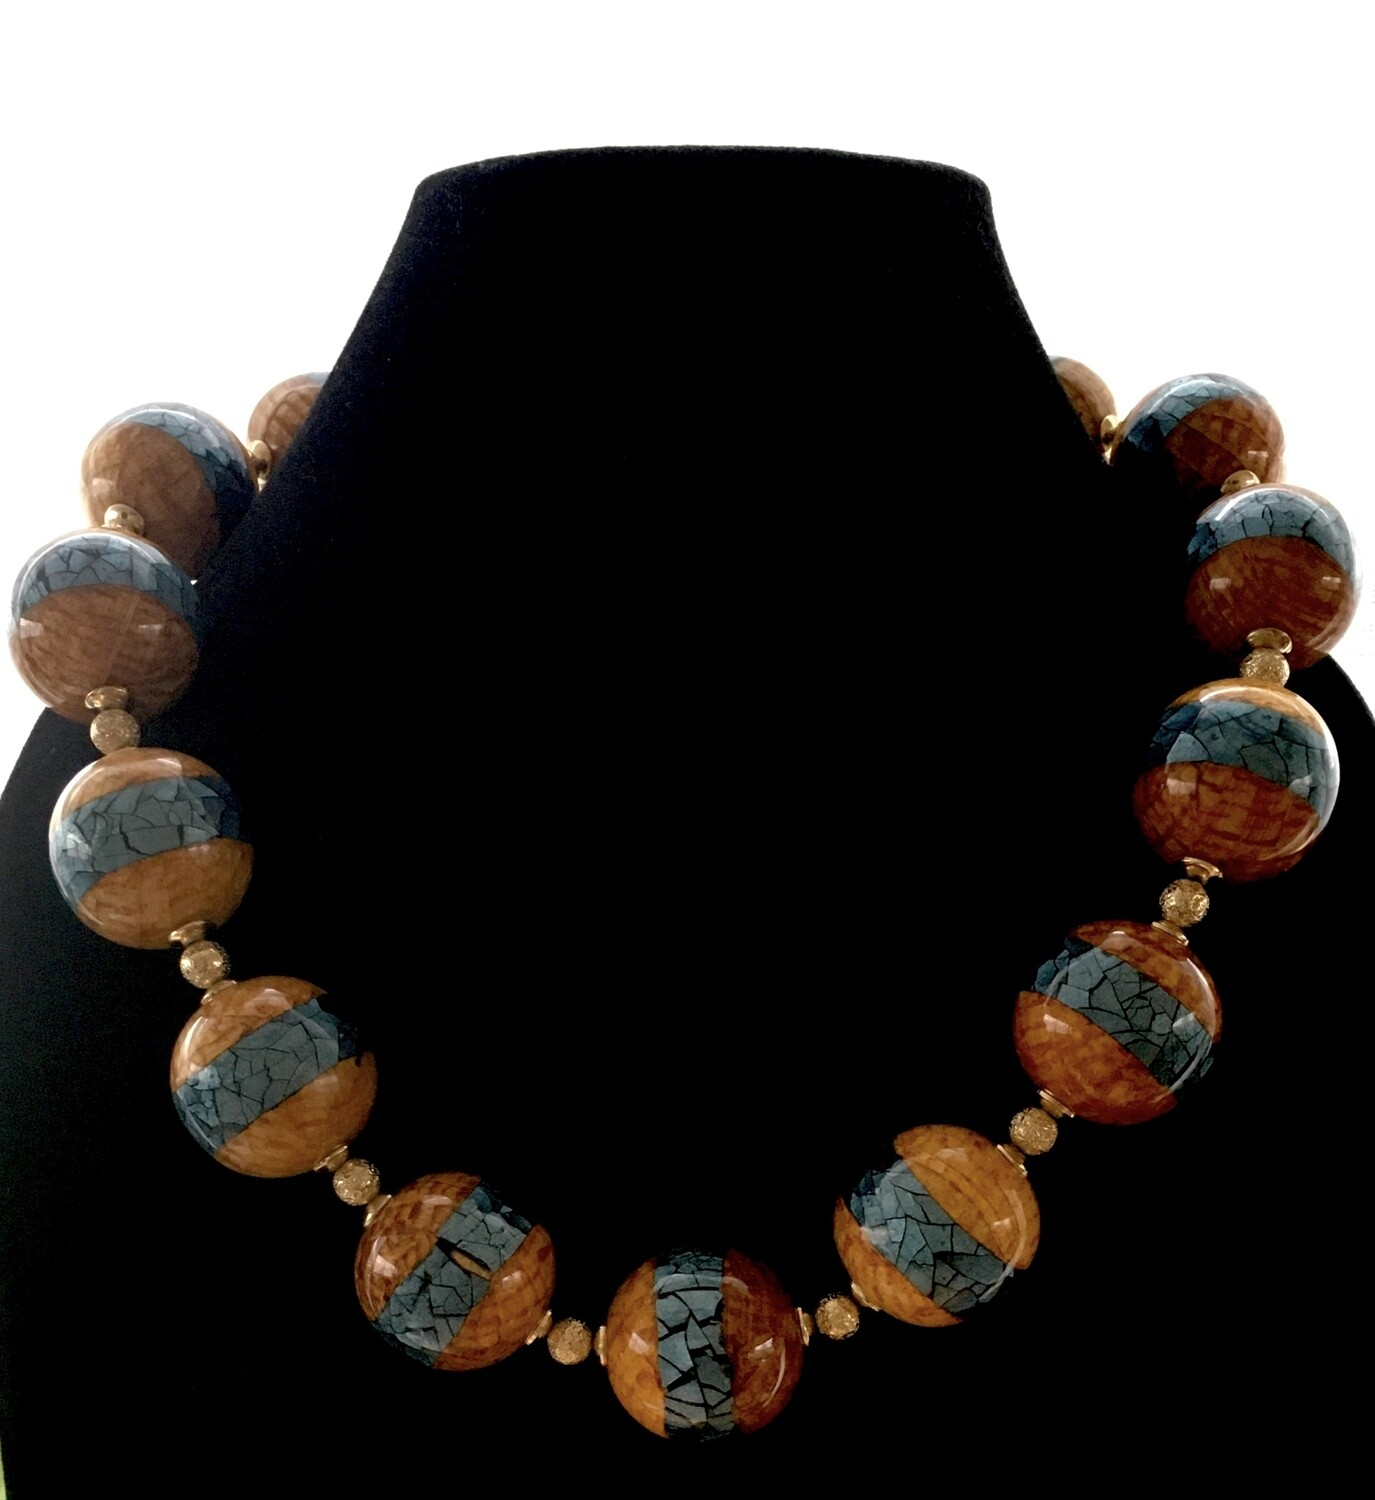 Brown marbled with gray strip balls necklace